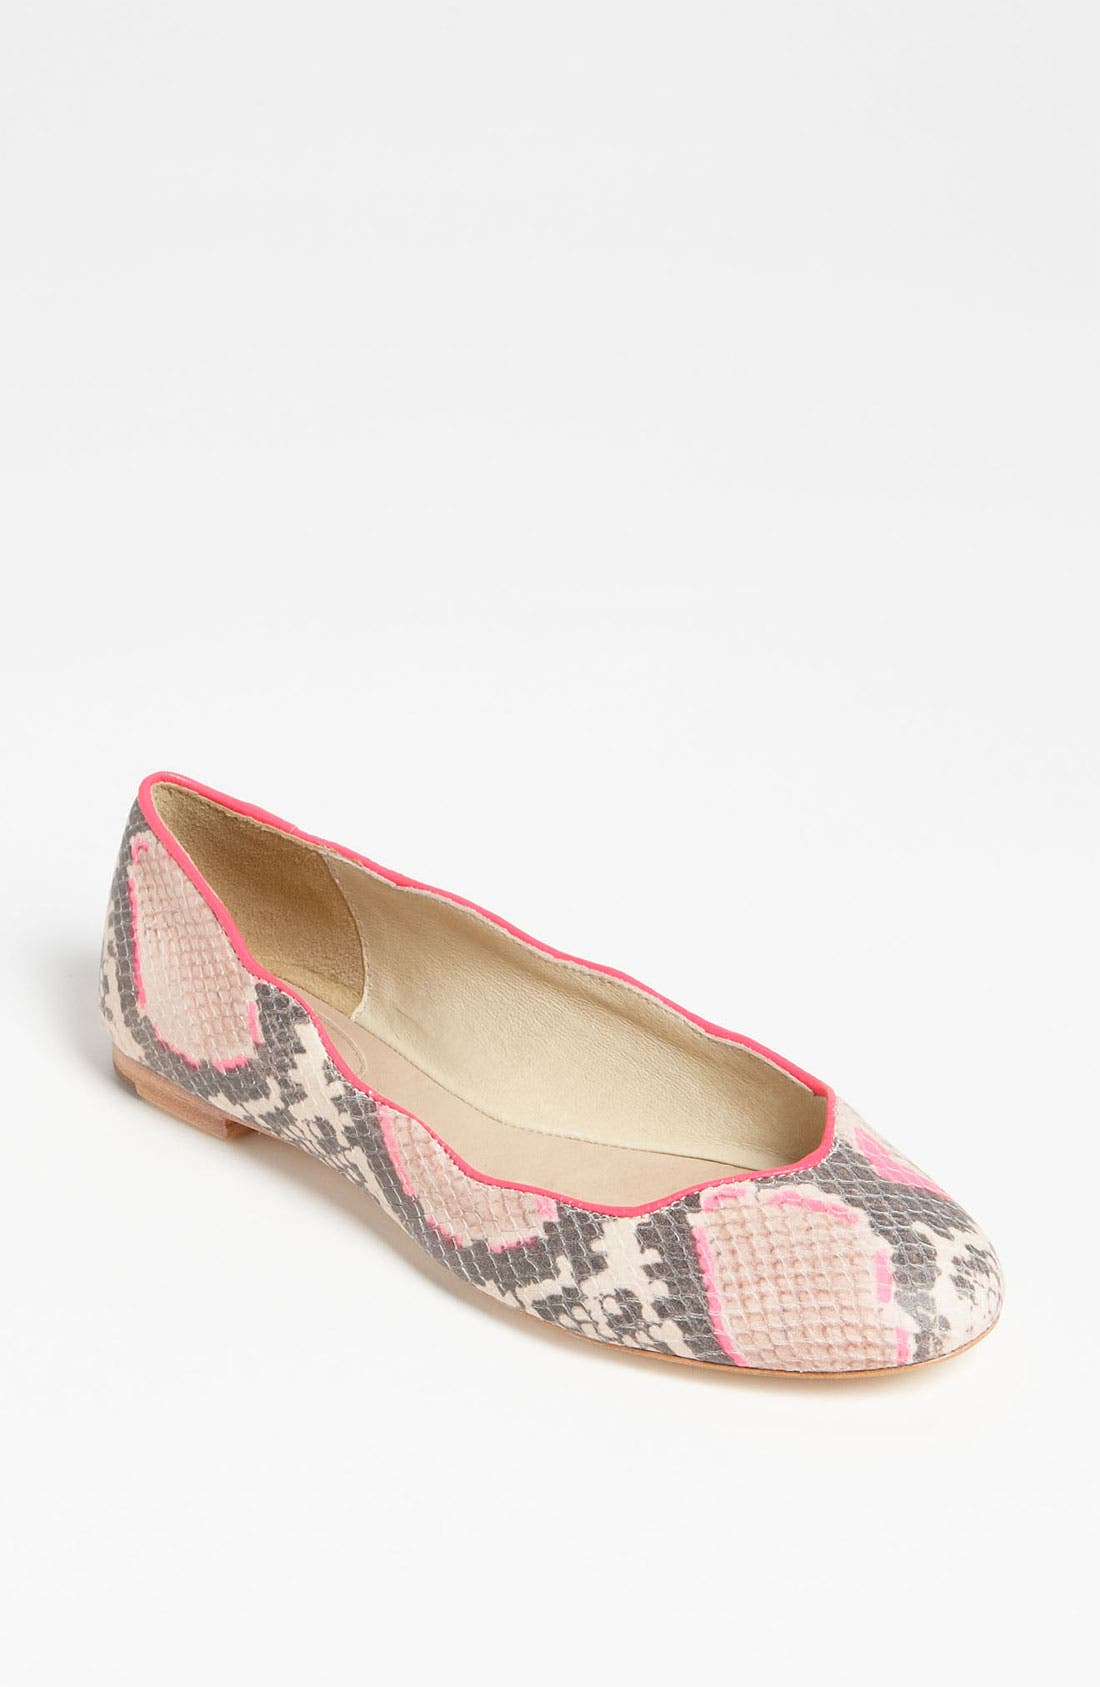 Alternate Image 1 Selected - Juicy Couture 'Jailyn' Flat